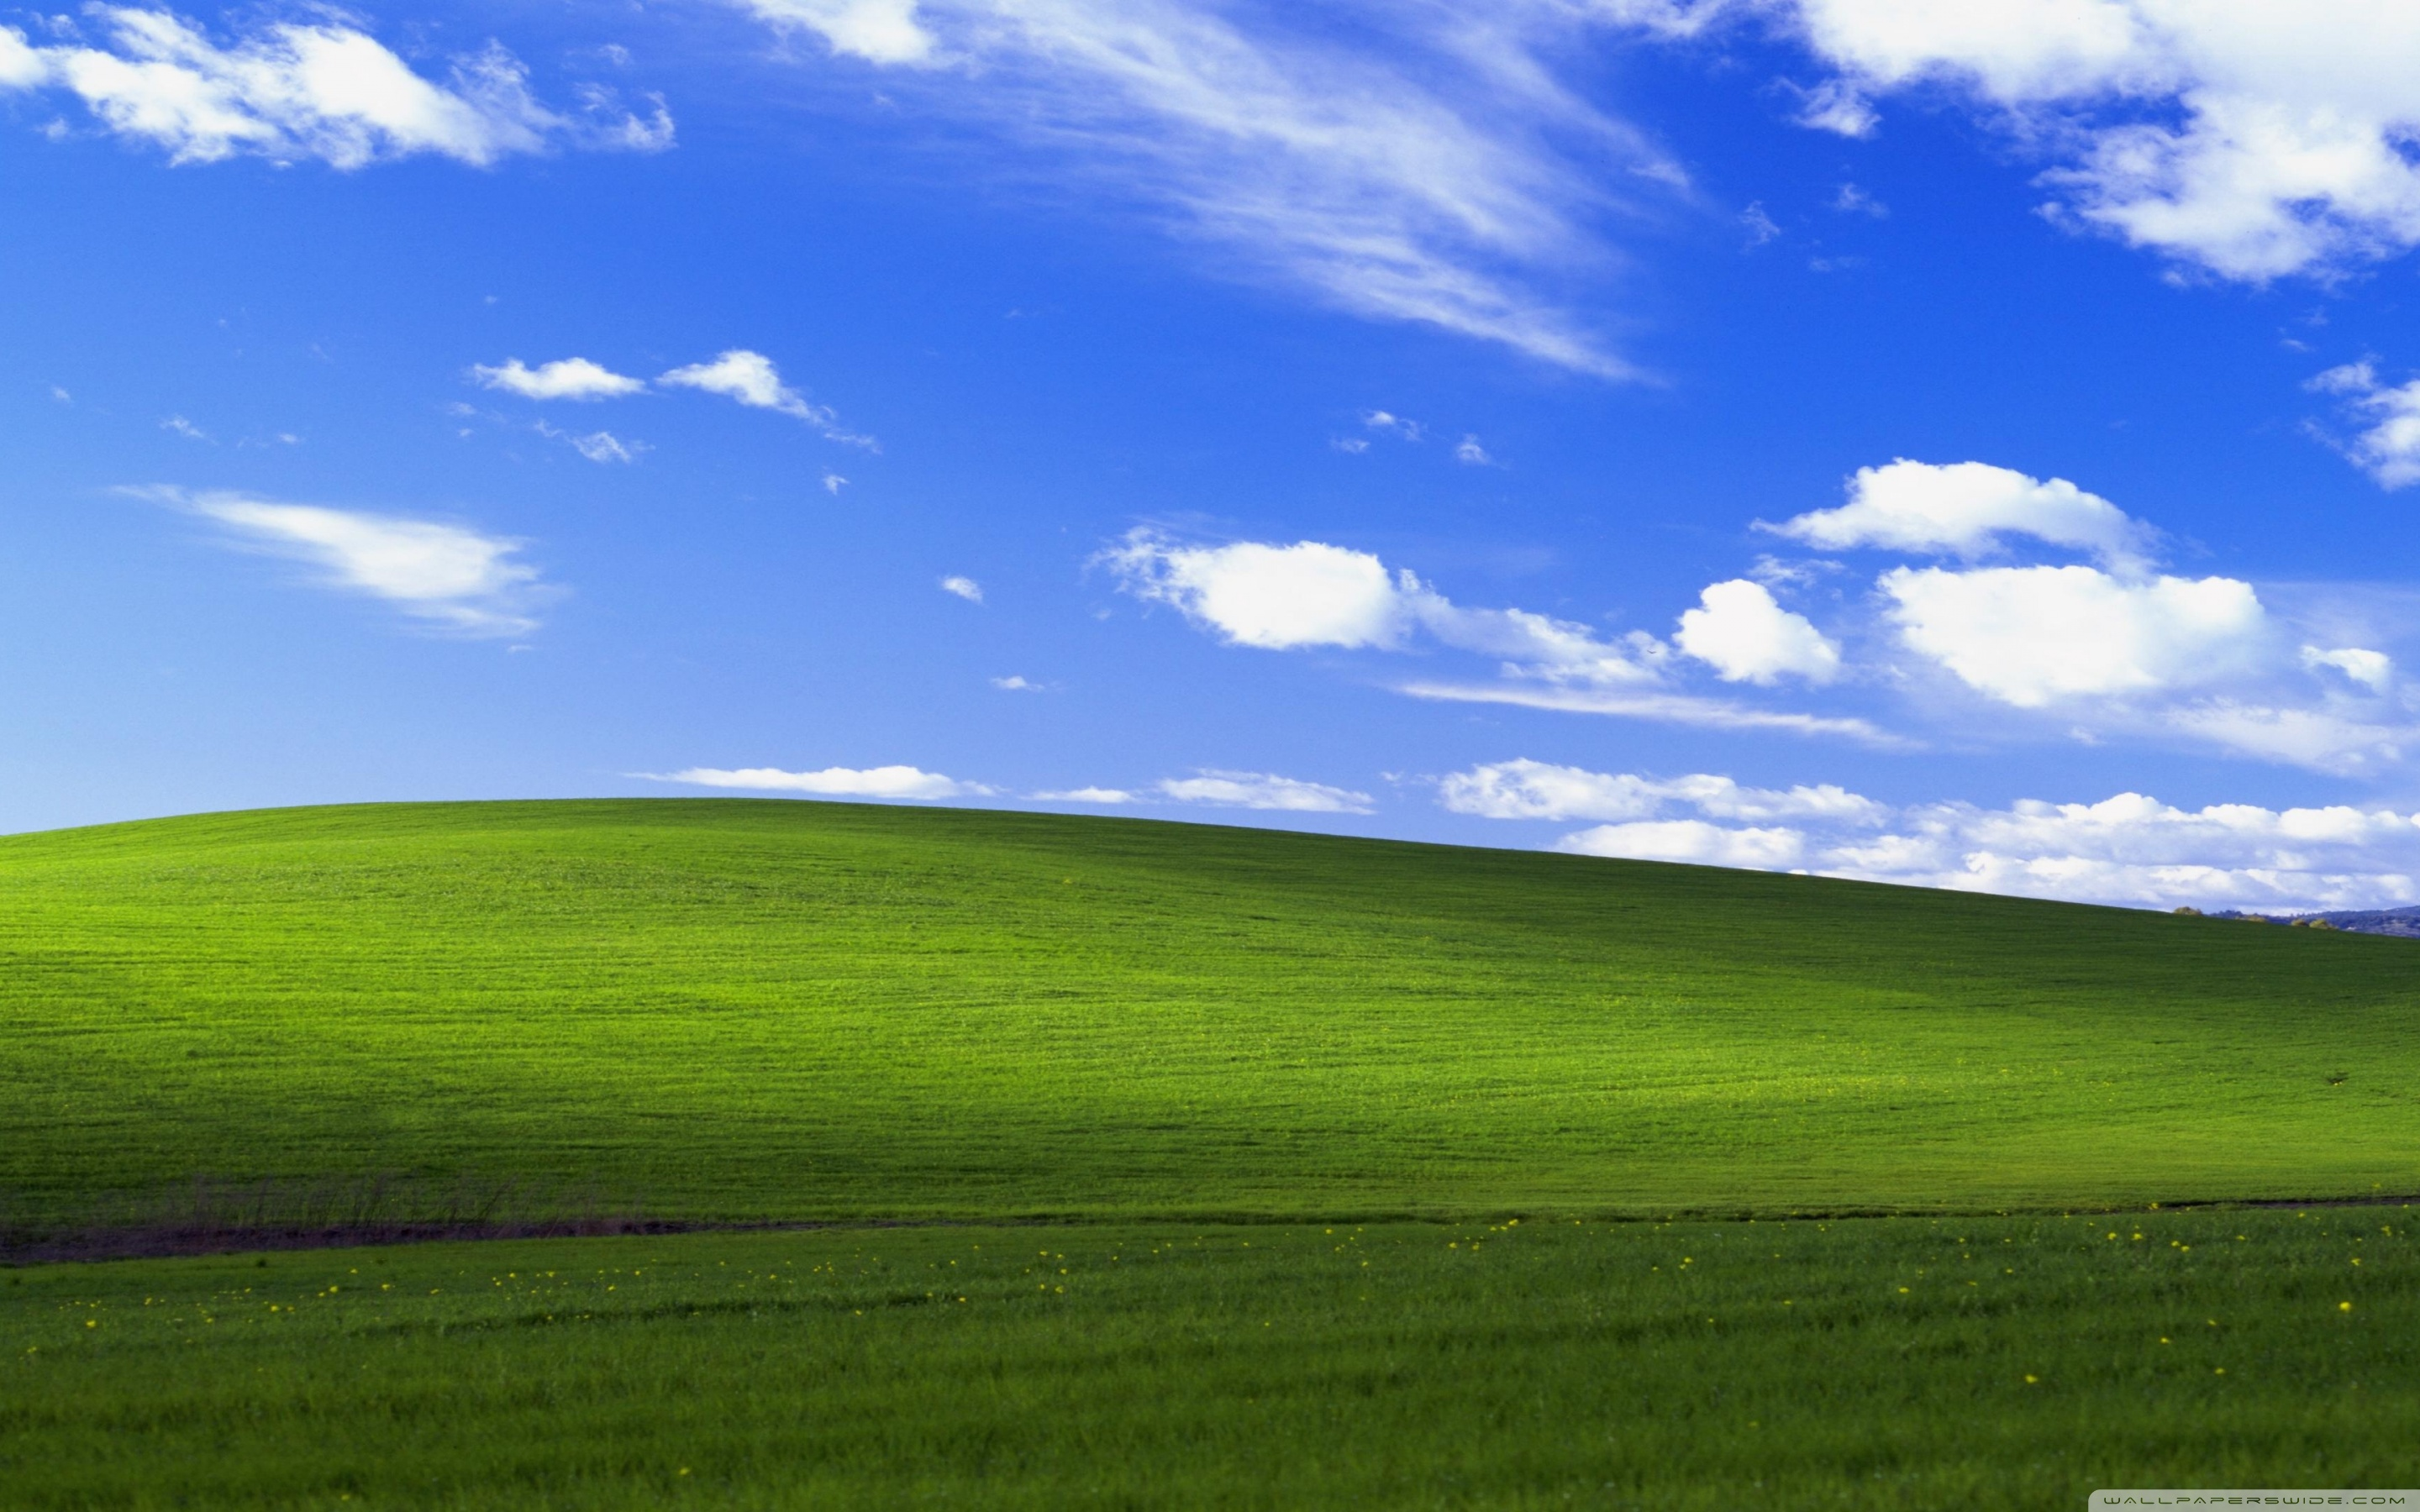 Windows XP Ultra HD Desktop Background Wallpaper for 4K UHD TV 2880x1800